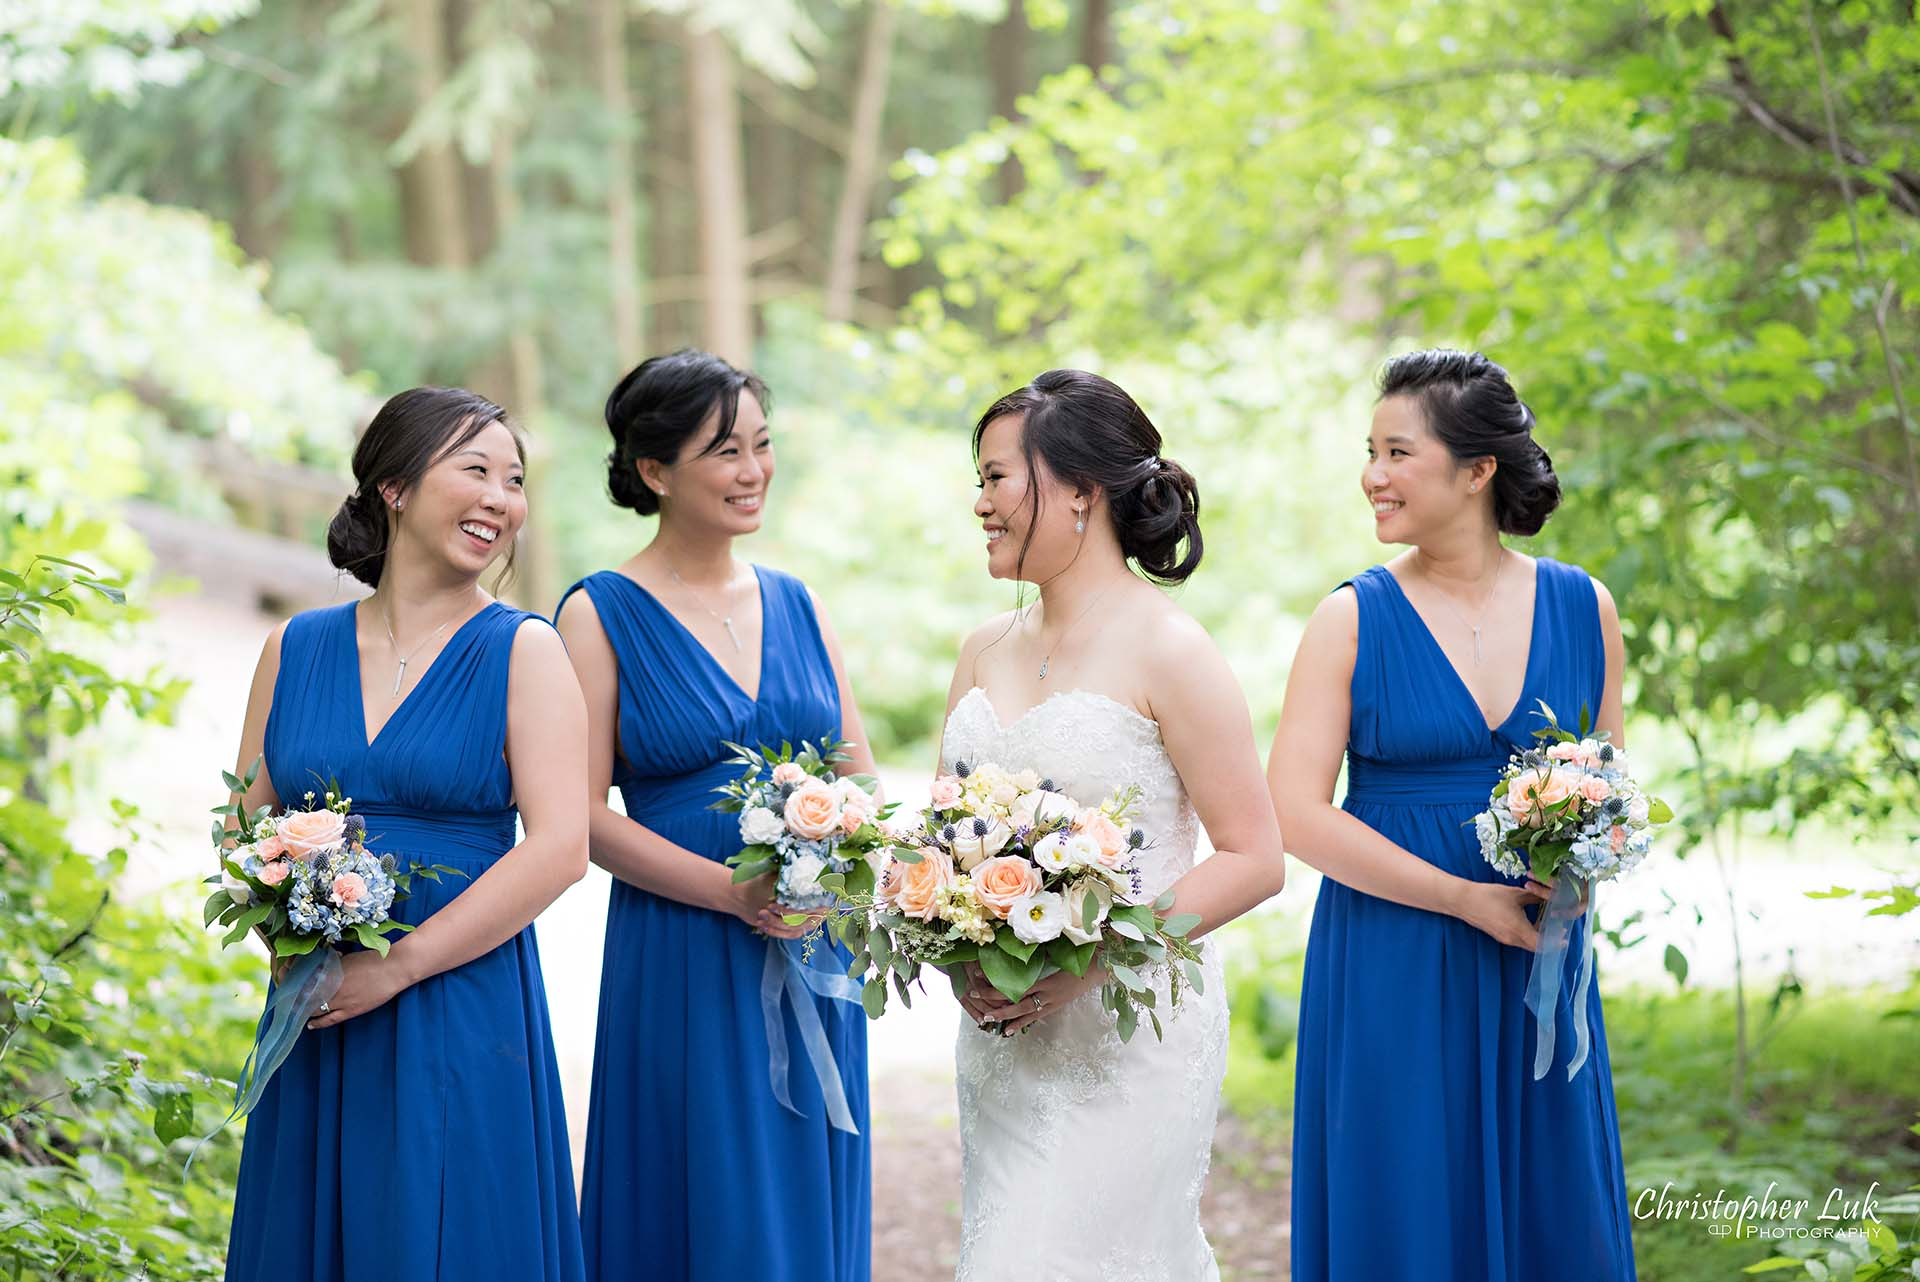 Christopher Luk Toronto Christian Community Church Kleinburg McMichael Art Gallery Presidente Banquet Hall Vaughan Wedding Photographer Bride Bridal Party Bridesmaids Matron Maid of Honour Natural Candid Photojournalistic Forest Woods Wooded Area Tall Trees Blue Dresses Laughing Together